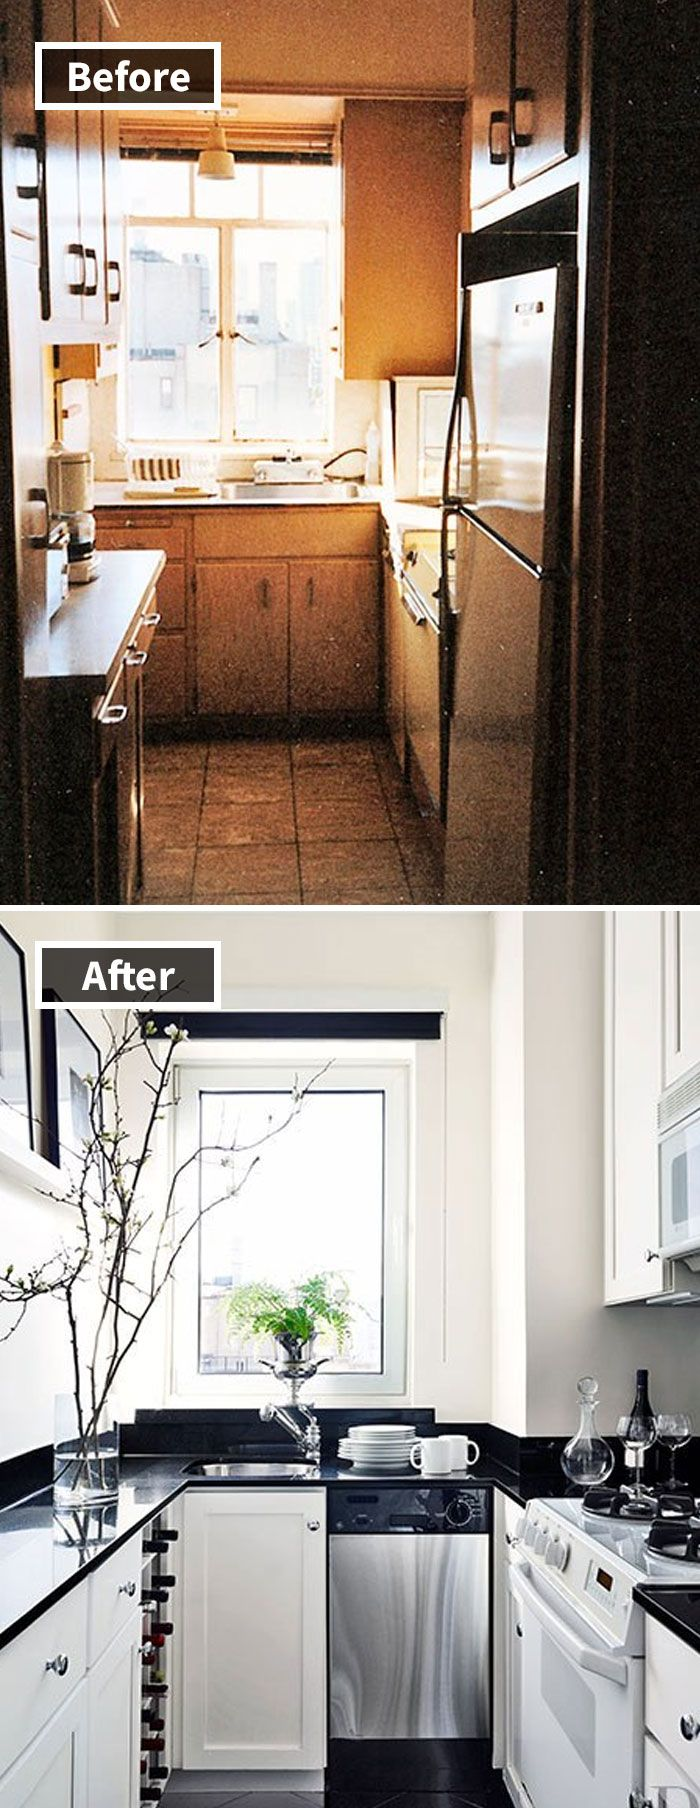 190 rooms before and after makeover maison relooking - Relooking salle a manger rustique ...